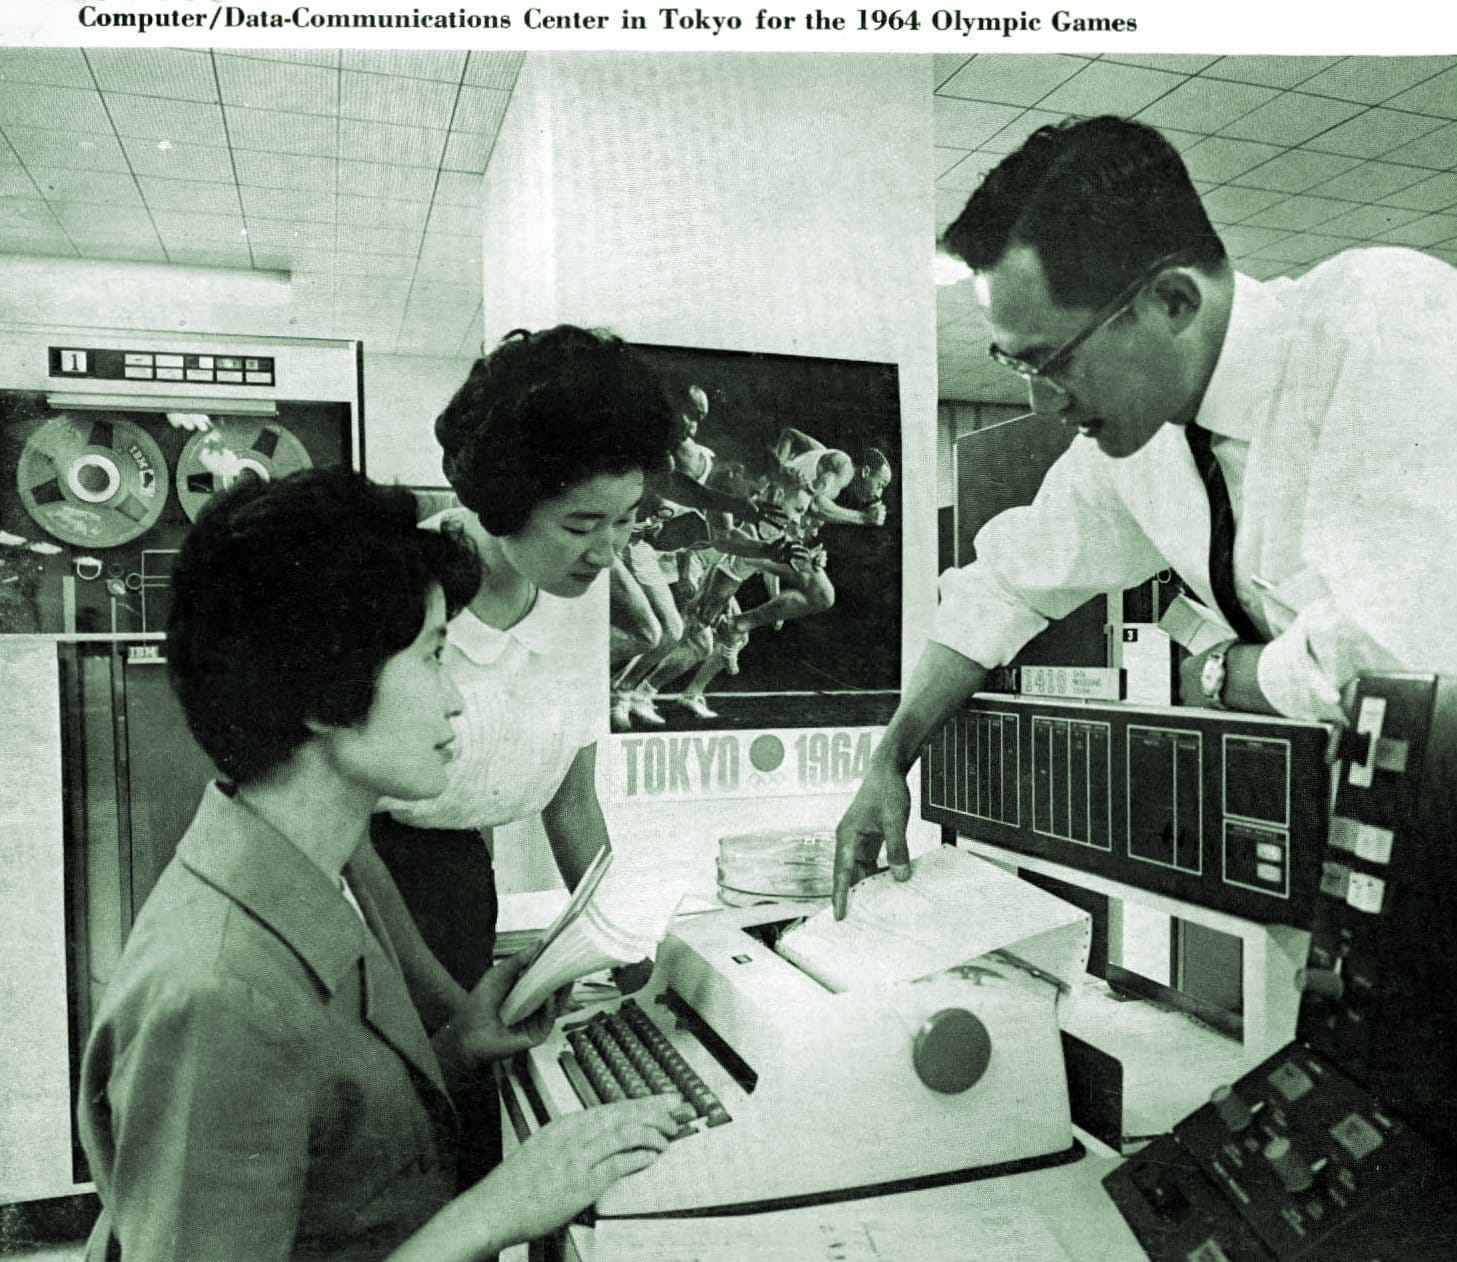 Computer-Data communications center in Tokyo Japan for the 1964 Olympic Games